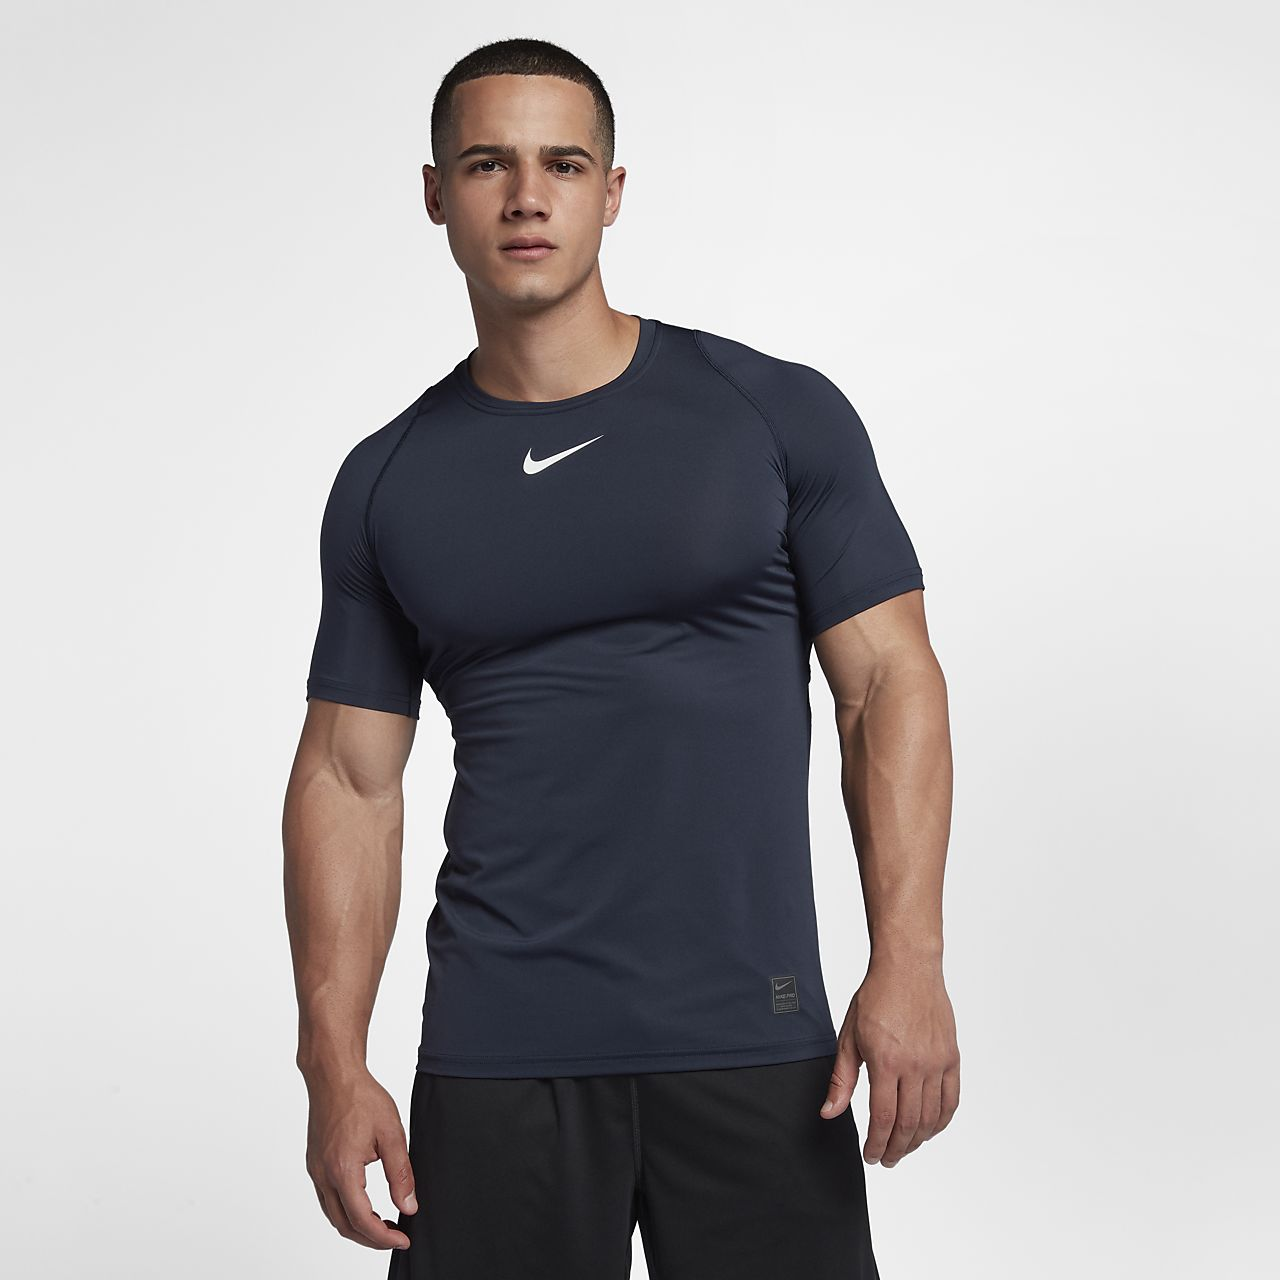 0115aac1 Nike Pro Men's Training Top. Nike.com